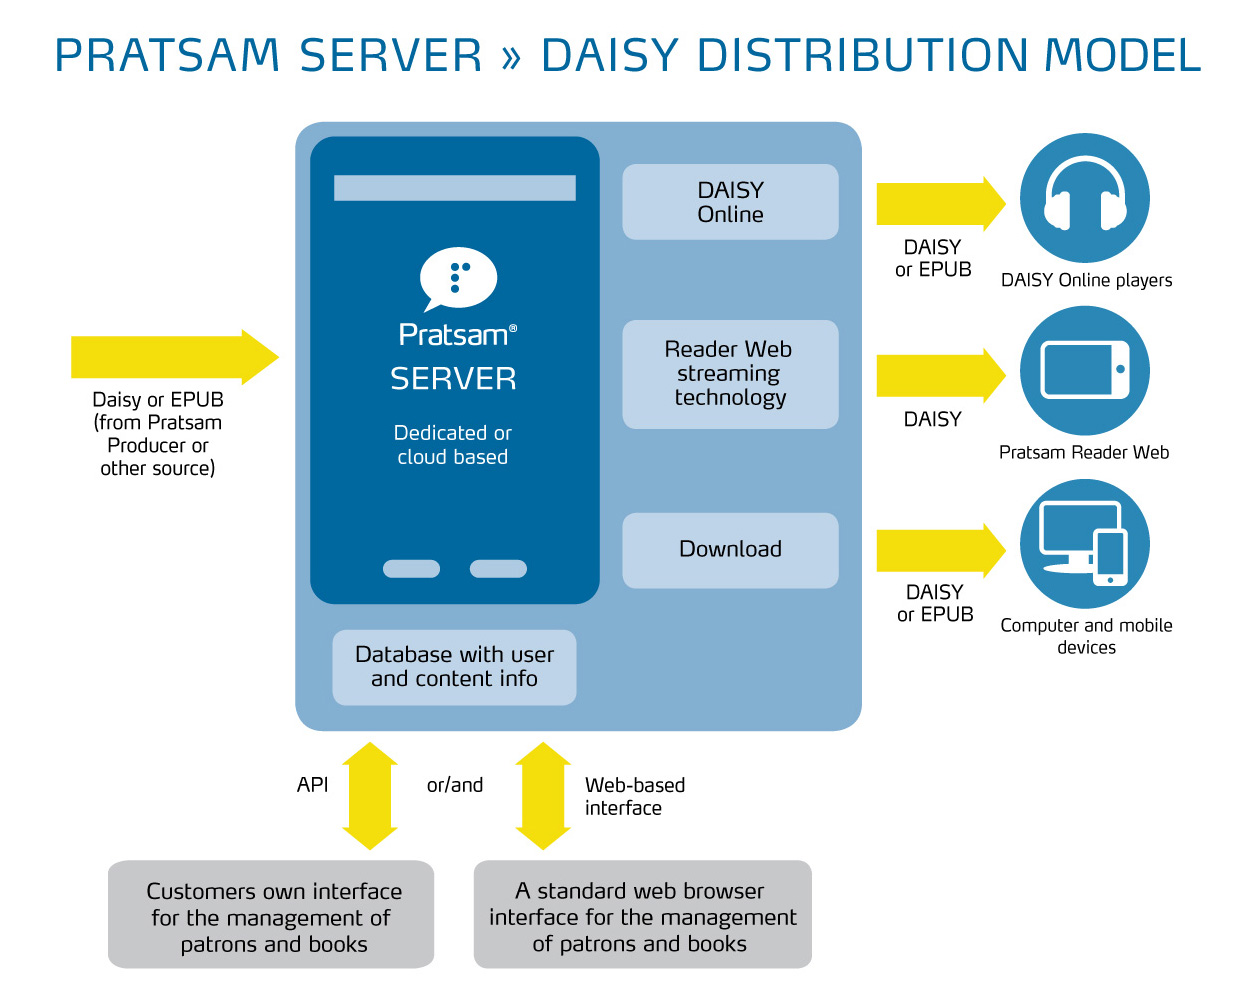 Graphical overview of Pratsam Server delivering DAISY online